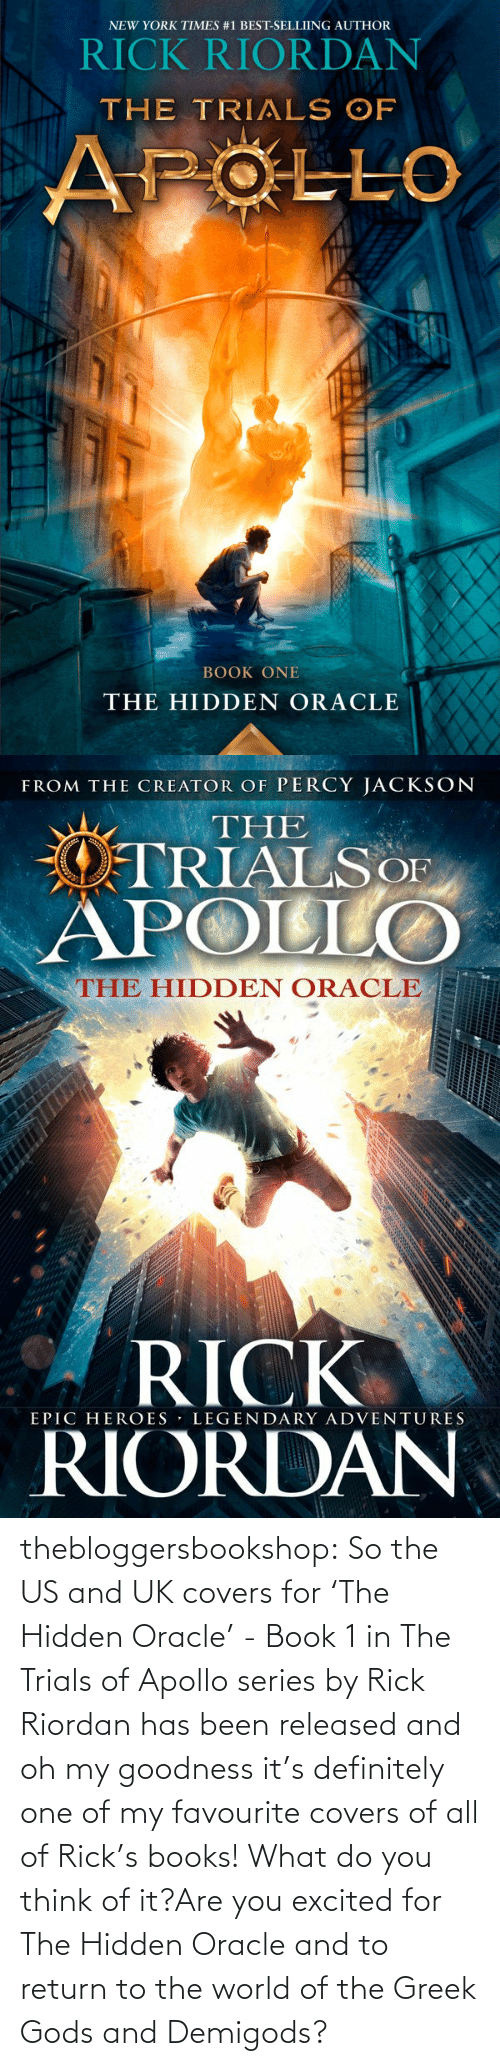 greek gods: NEW YORK TIMES #1 BEST-SELLIING AUTHOR  RICK RIORDAN  THE TRIALS OF  APOLLO  BOOK ONE  THE HIDDEN ORACLE   FROM THE CREATOR OF PERCY JACKSON  THE  OTRIALSOF  APOLLO  THE HIDDEN ORACLE  RICK  RIORDAN  EPIC HEROES LEGENDARY ADVENTURES thebloggersbookshop:  So the US and UK covers for 'The Hidden Oracle' - Book 1 in The Trials of Apollo series by Rick Riordan has been released and oh my goodness it's definitely one of my favourite covers of all of Rick's books!What do you think of it?Are you excited for The Hidden Oracle and to return to the world of the Greek Gods and Demigods?